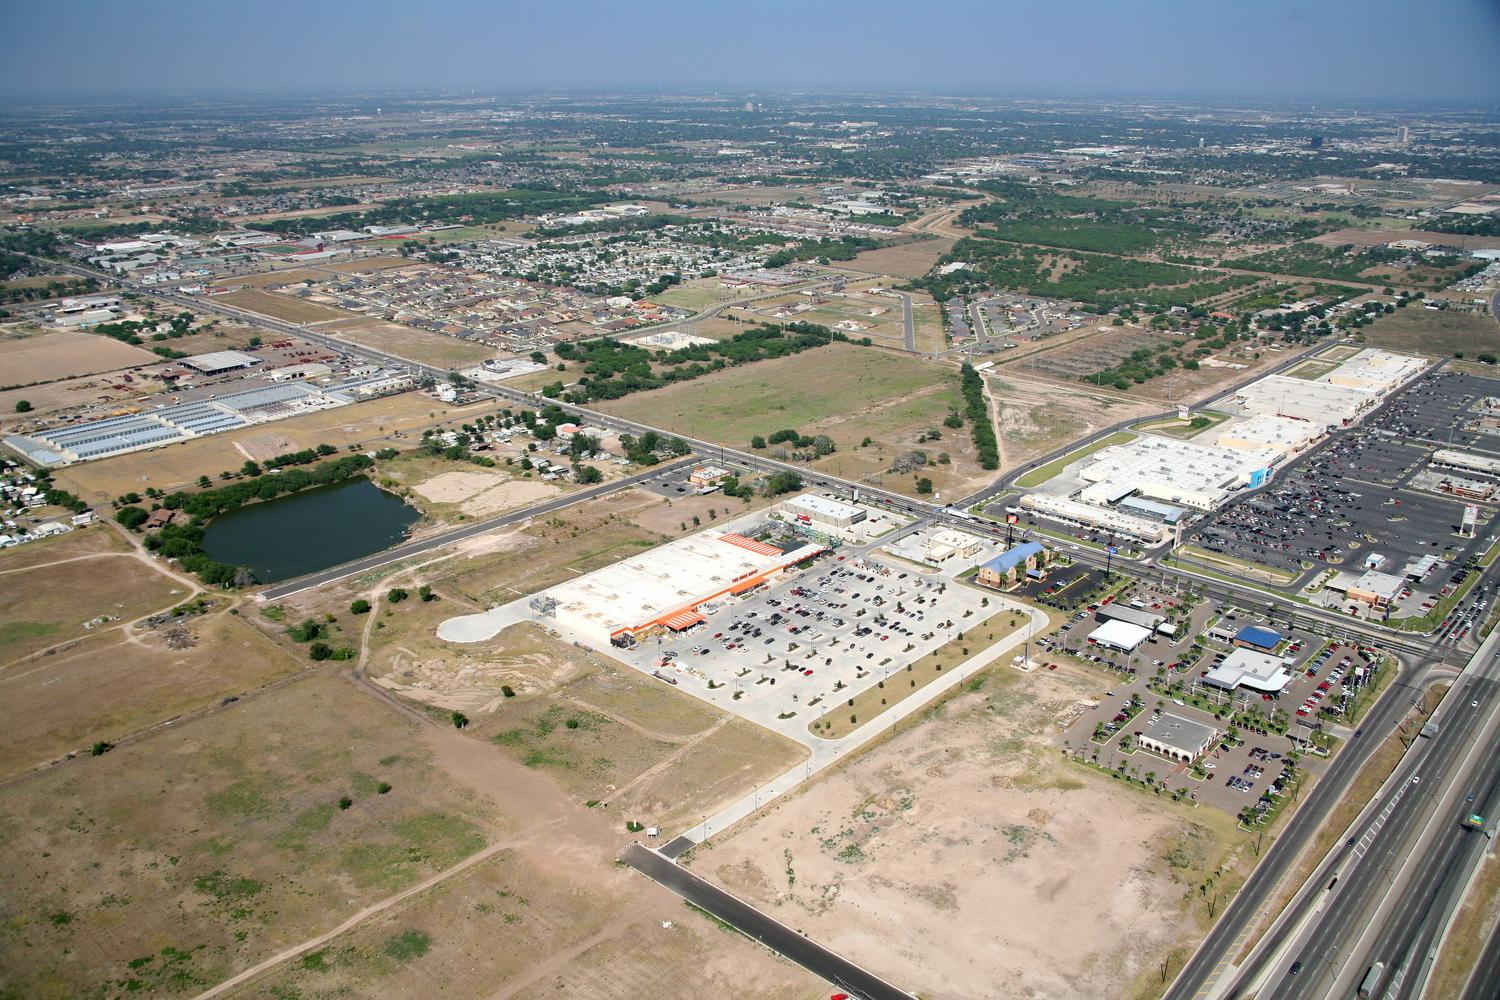 Home Depot, Mission, Texas - Mission Aerial Photographer - Aerial Drone Image - Aerial Drone Video - Mission, TX - Rio Grande Valley, Texas